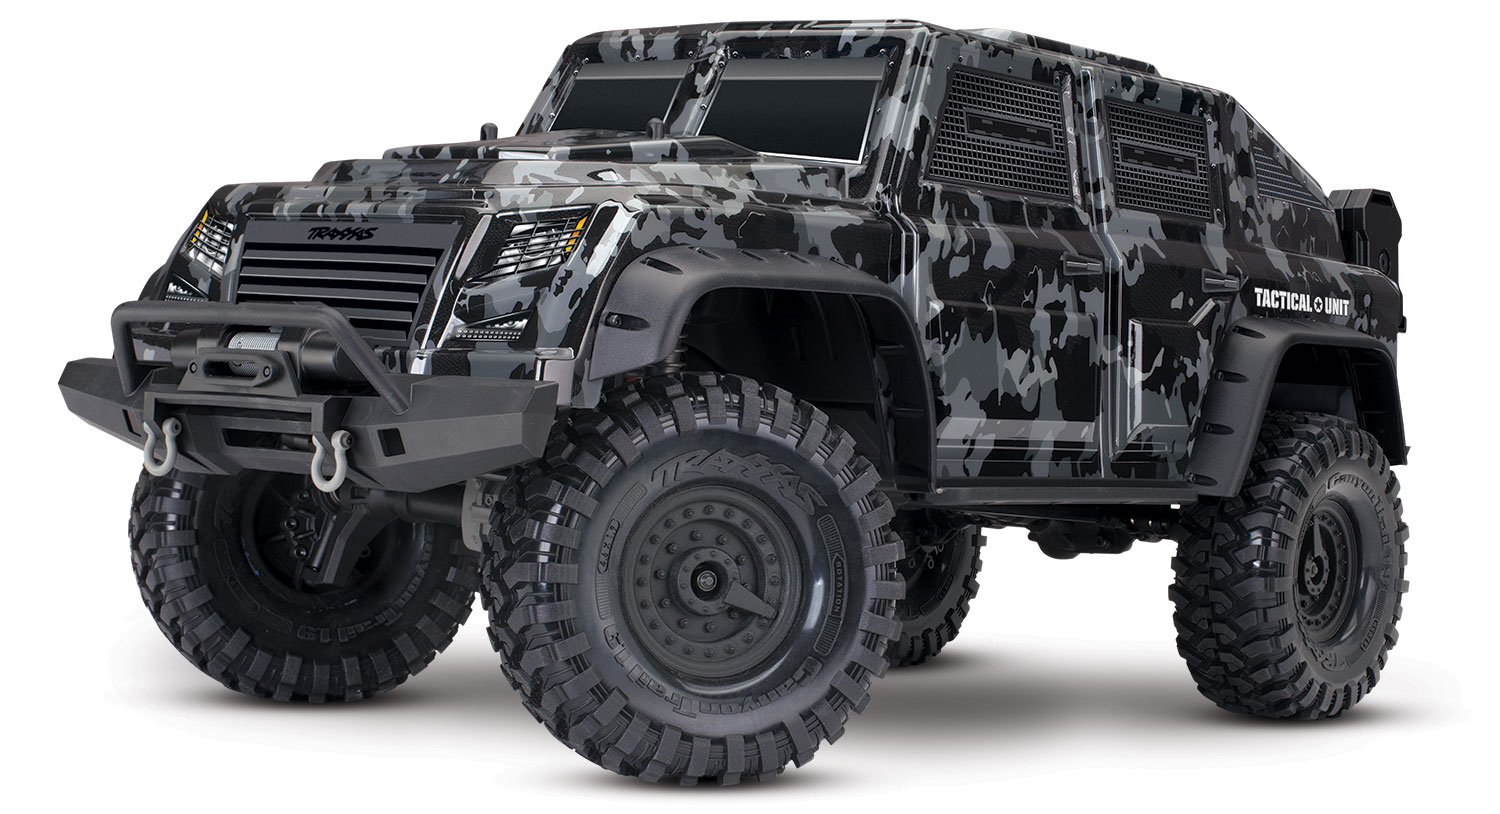 Traxxas TRX-4 Tactical Unit Rock Crawler 82066-4